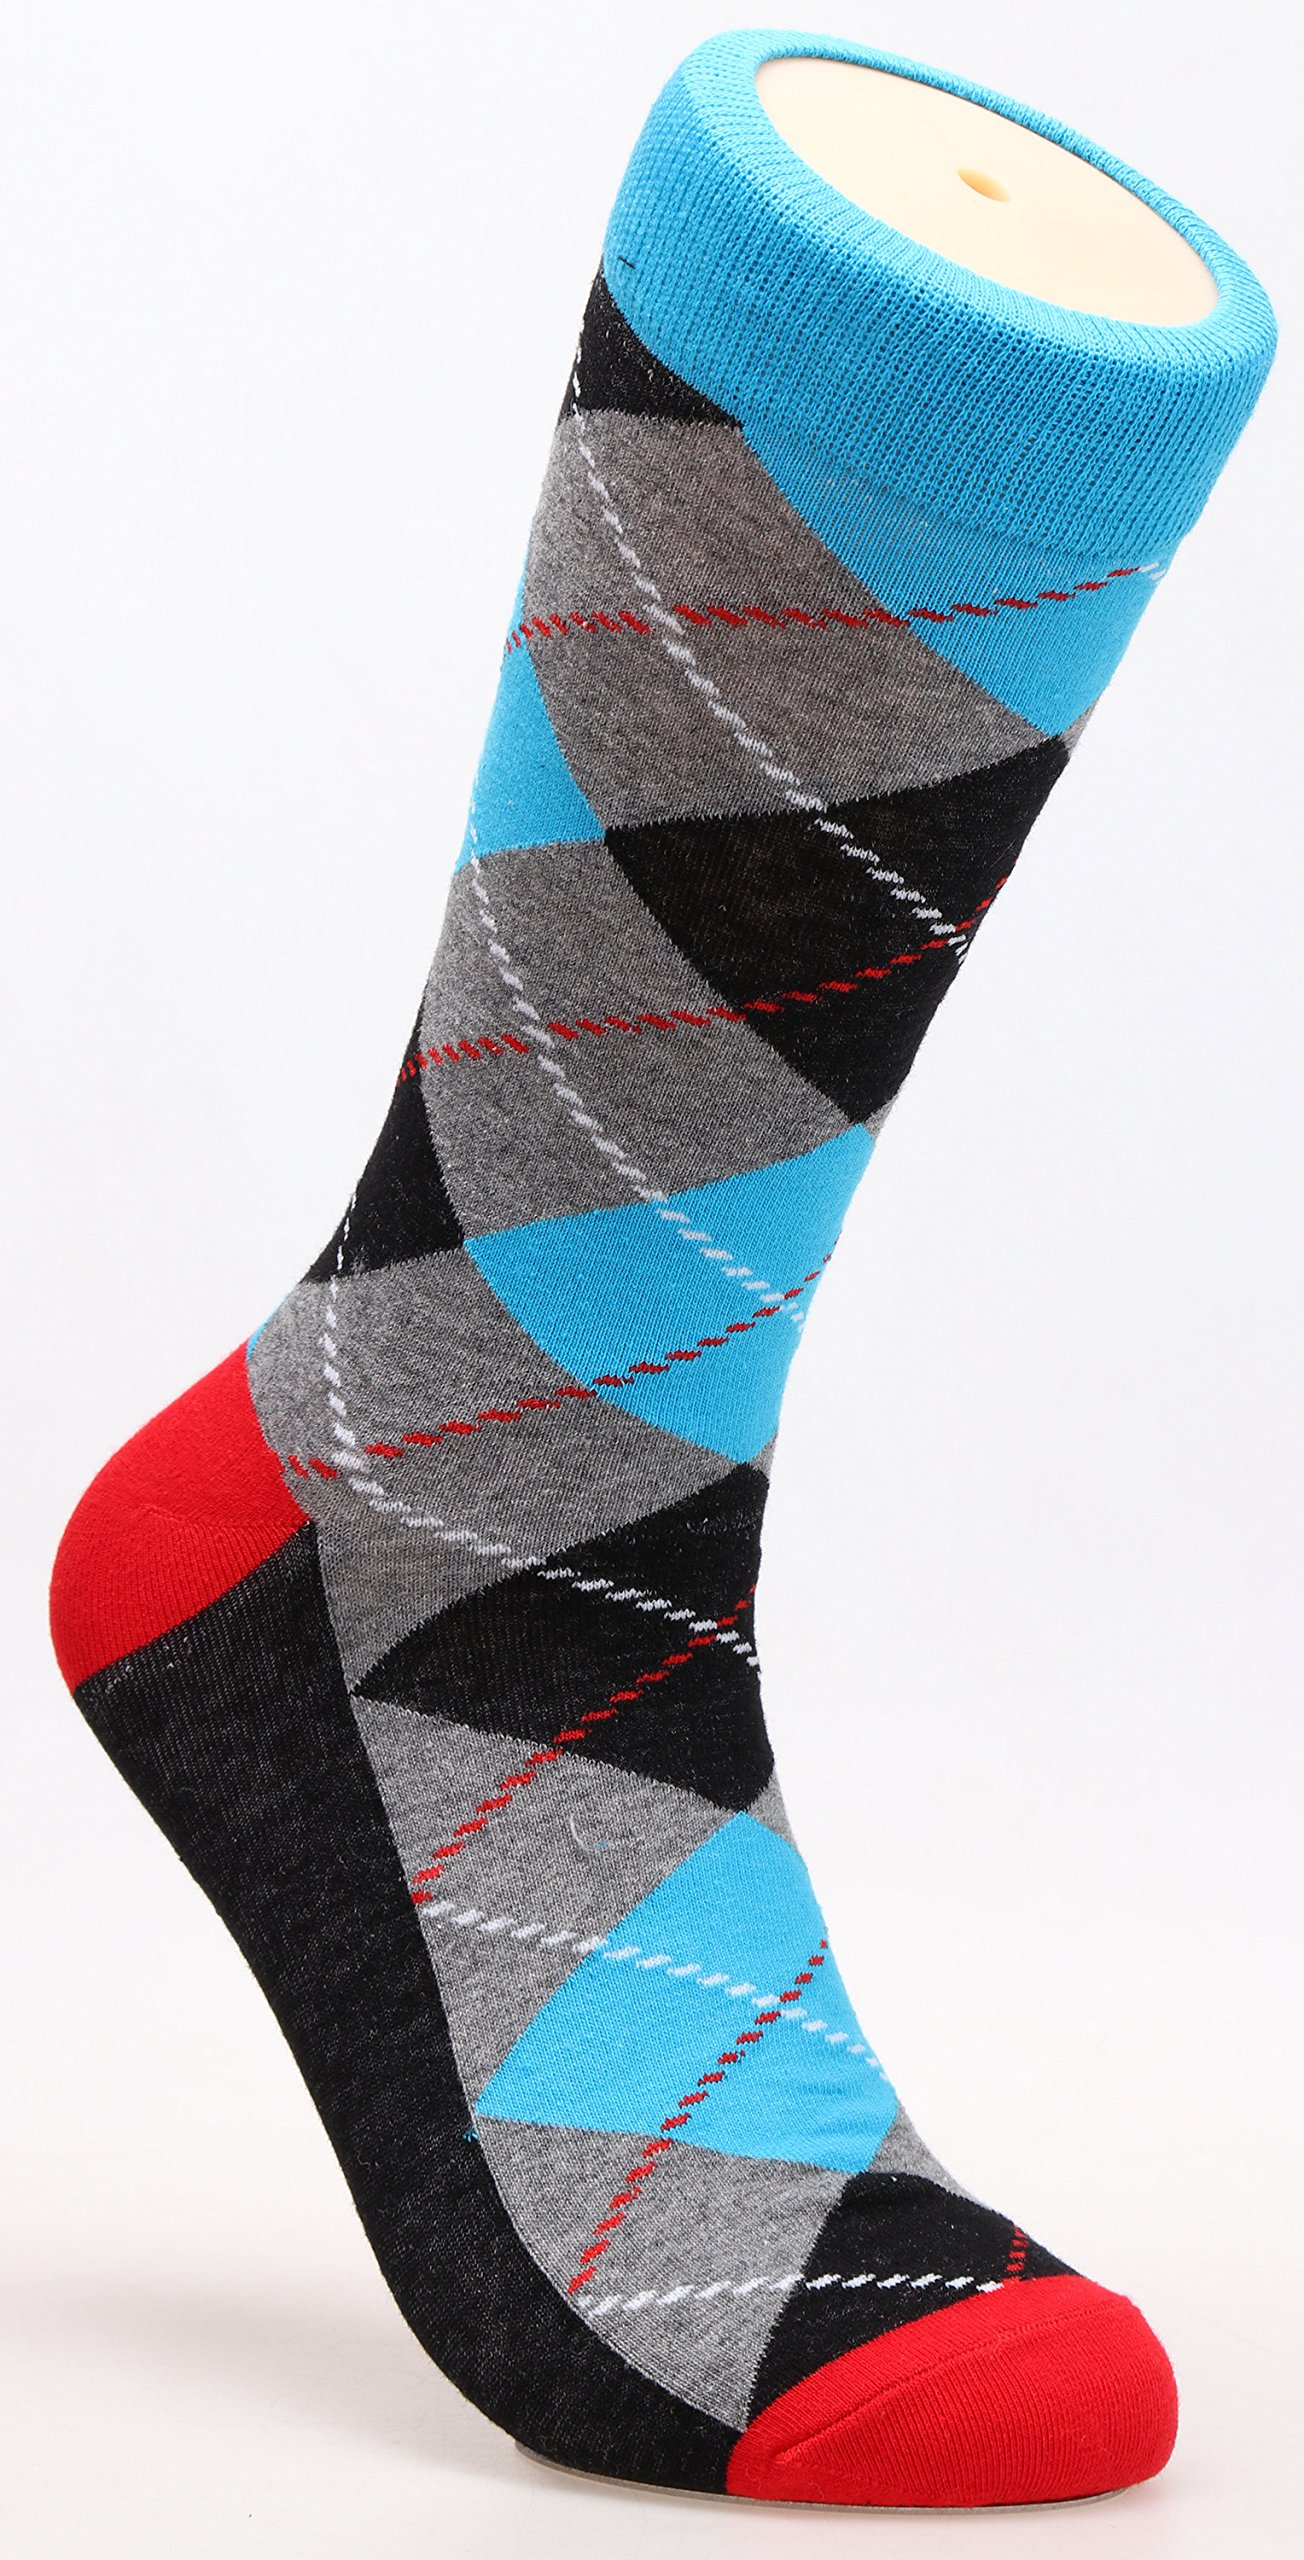 Galsang 4 Pack Cotton Argyle Business Trouser Dress Socks For Men Size 6-13 A301 (mixed color) by GALSANG (Image #7)